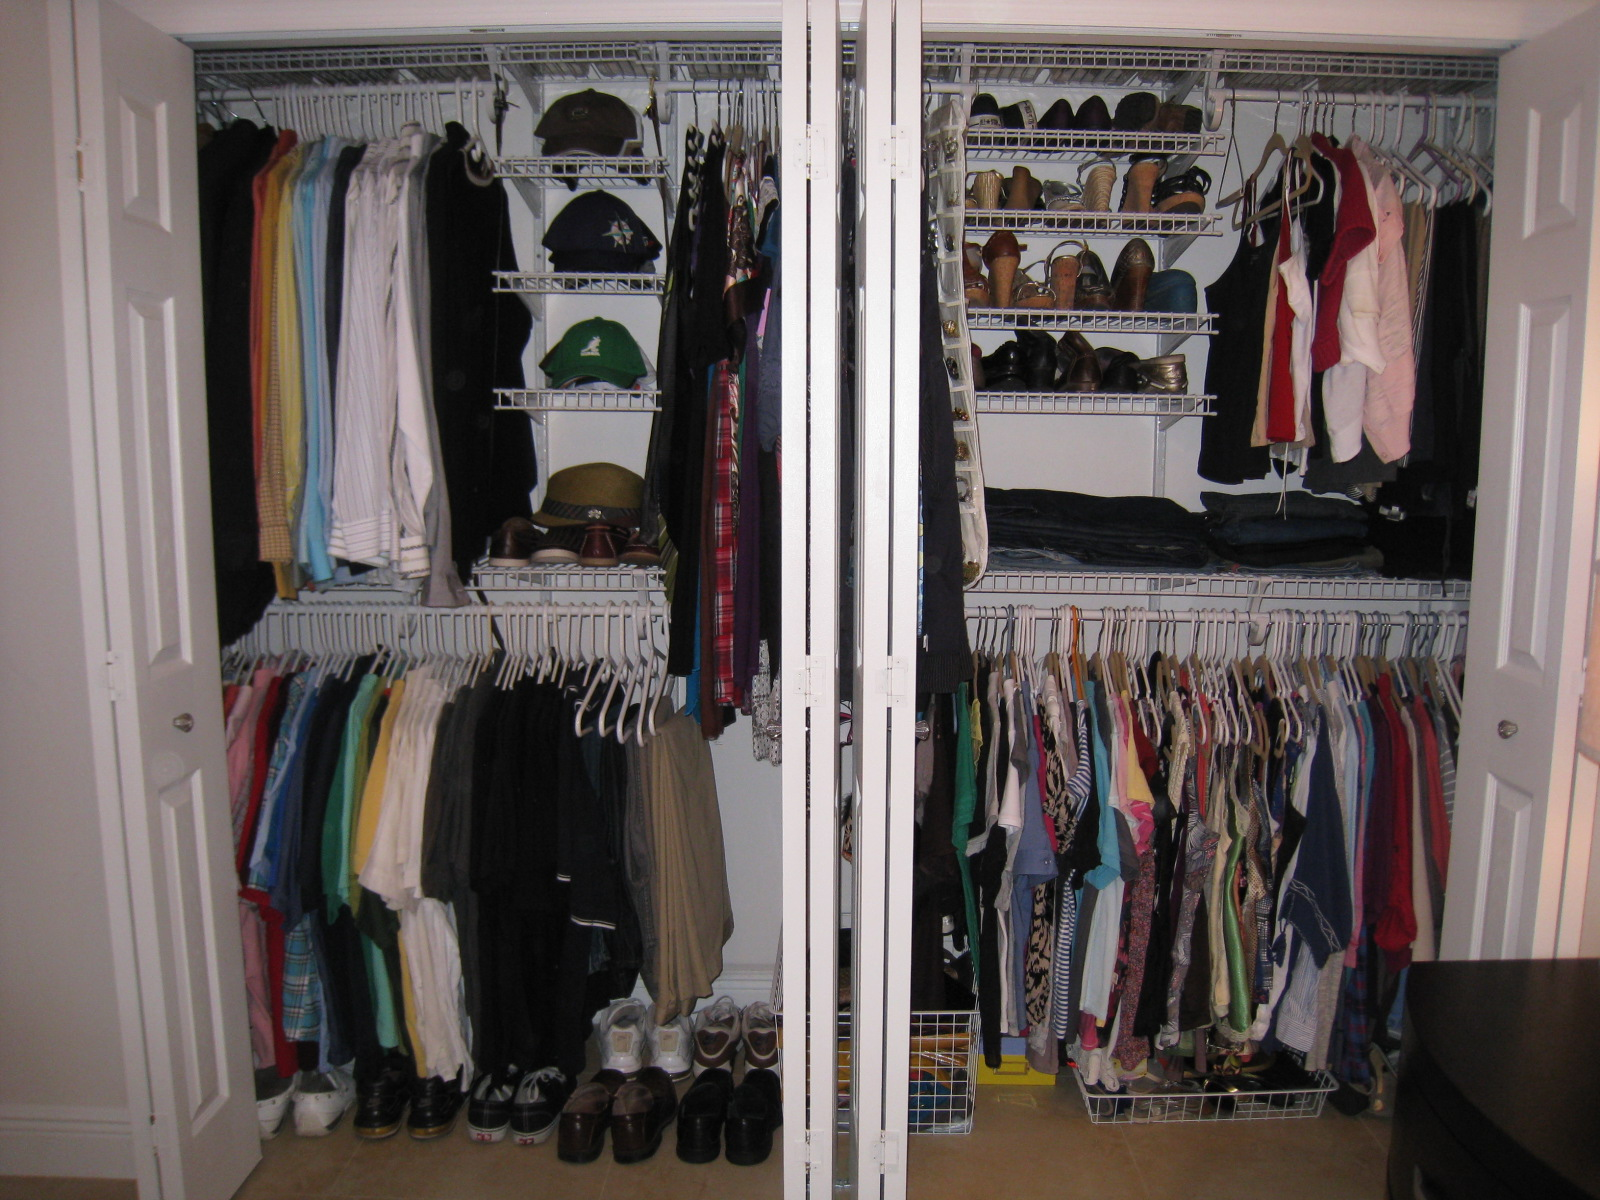 His And Hers Closet Organizer Revolutionhr